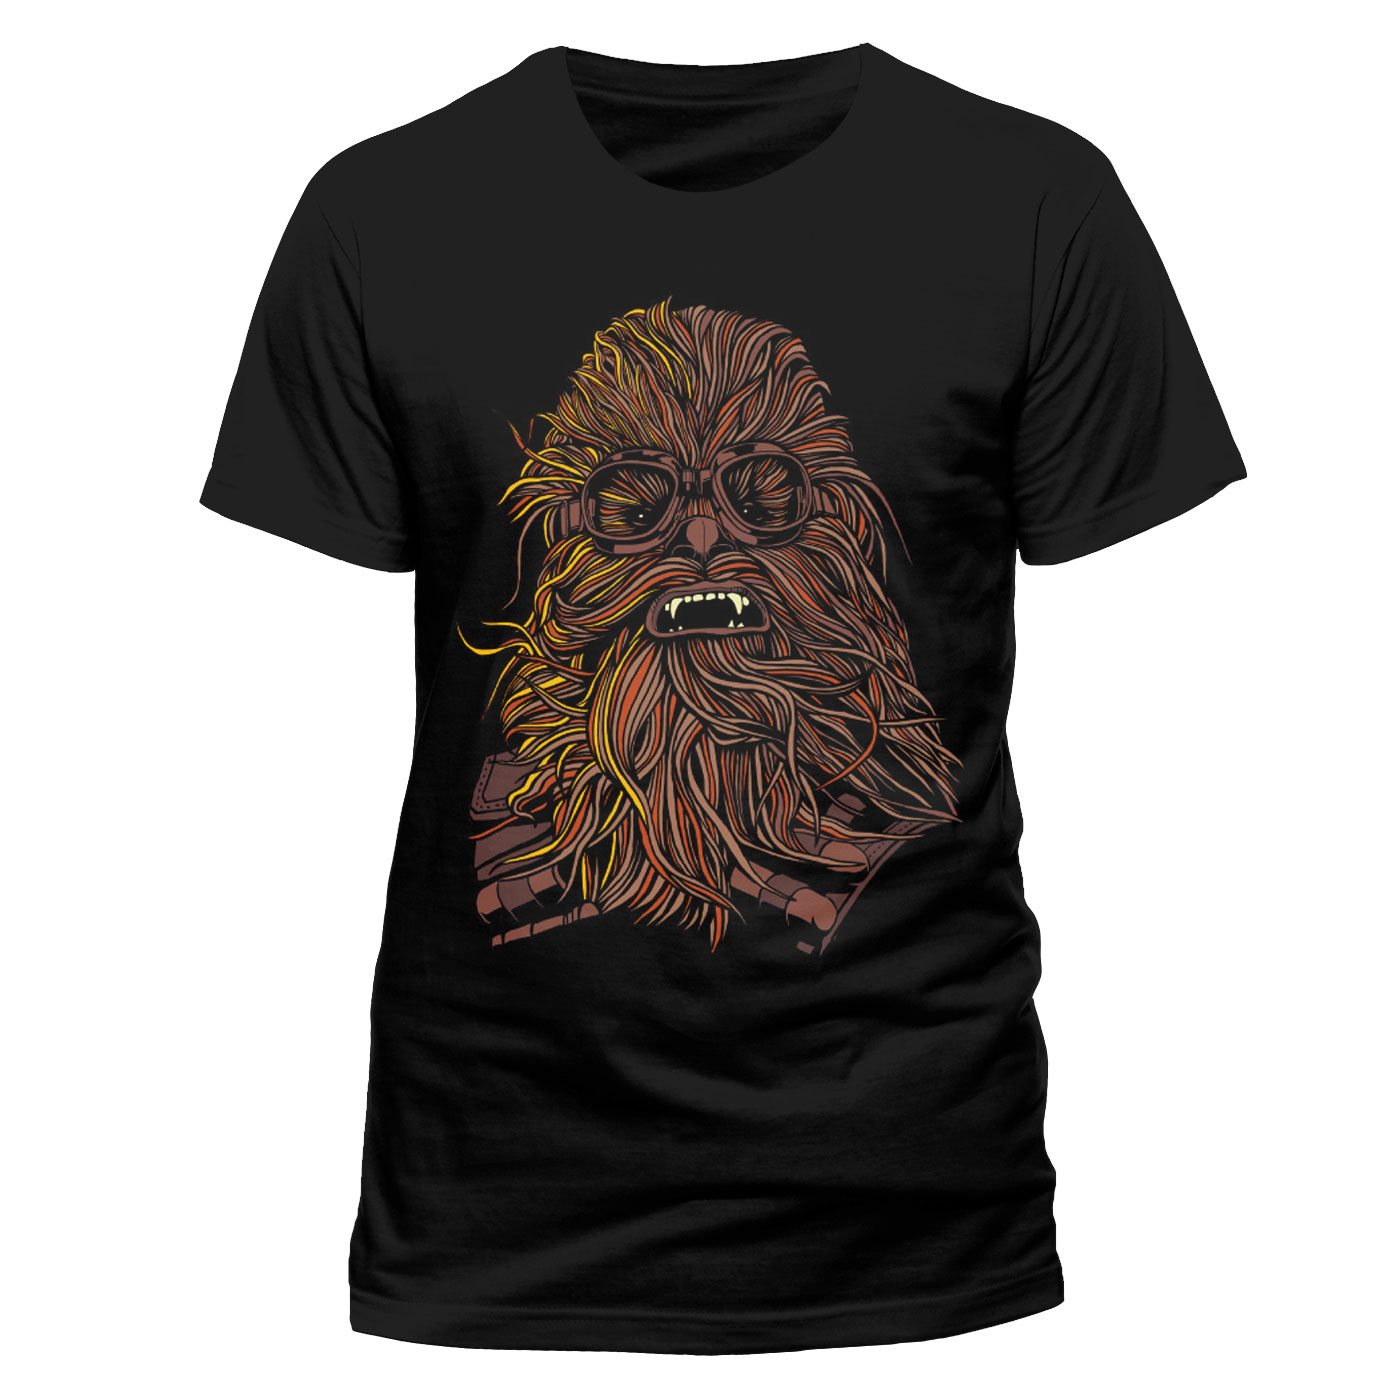 Star Wars Solo T-Shirt Chewie Goggles Size S